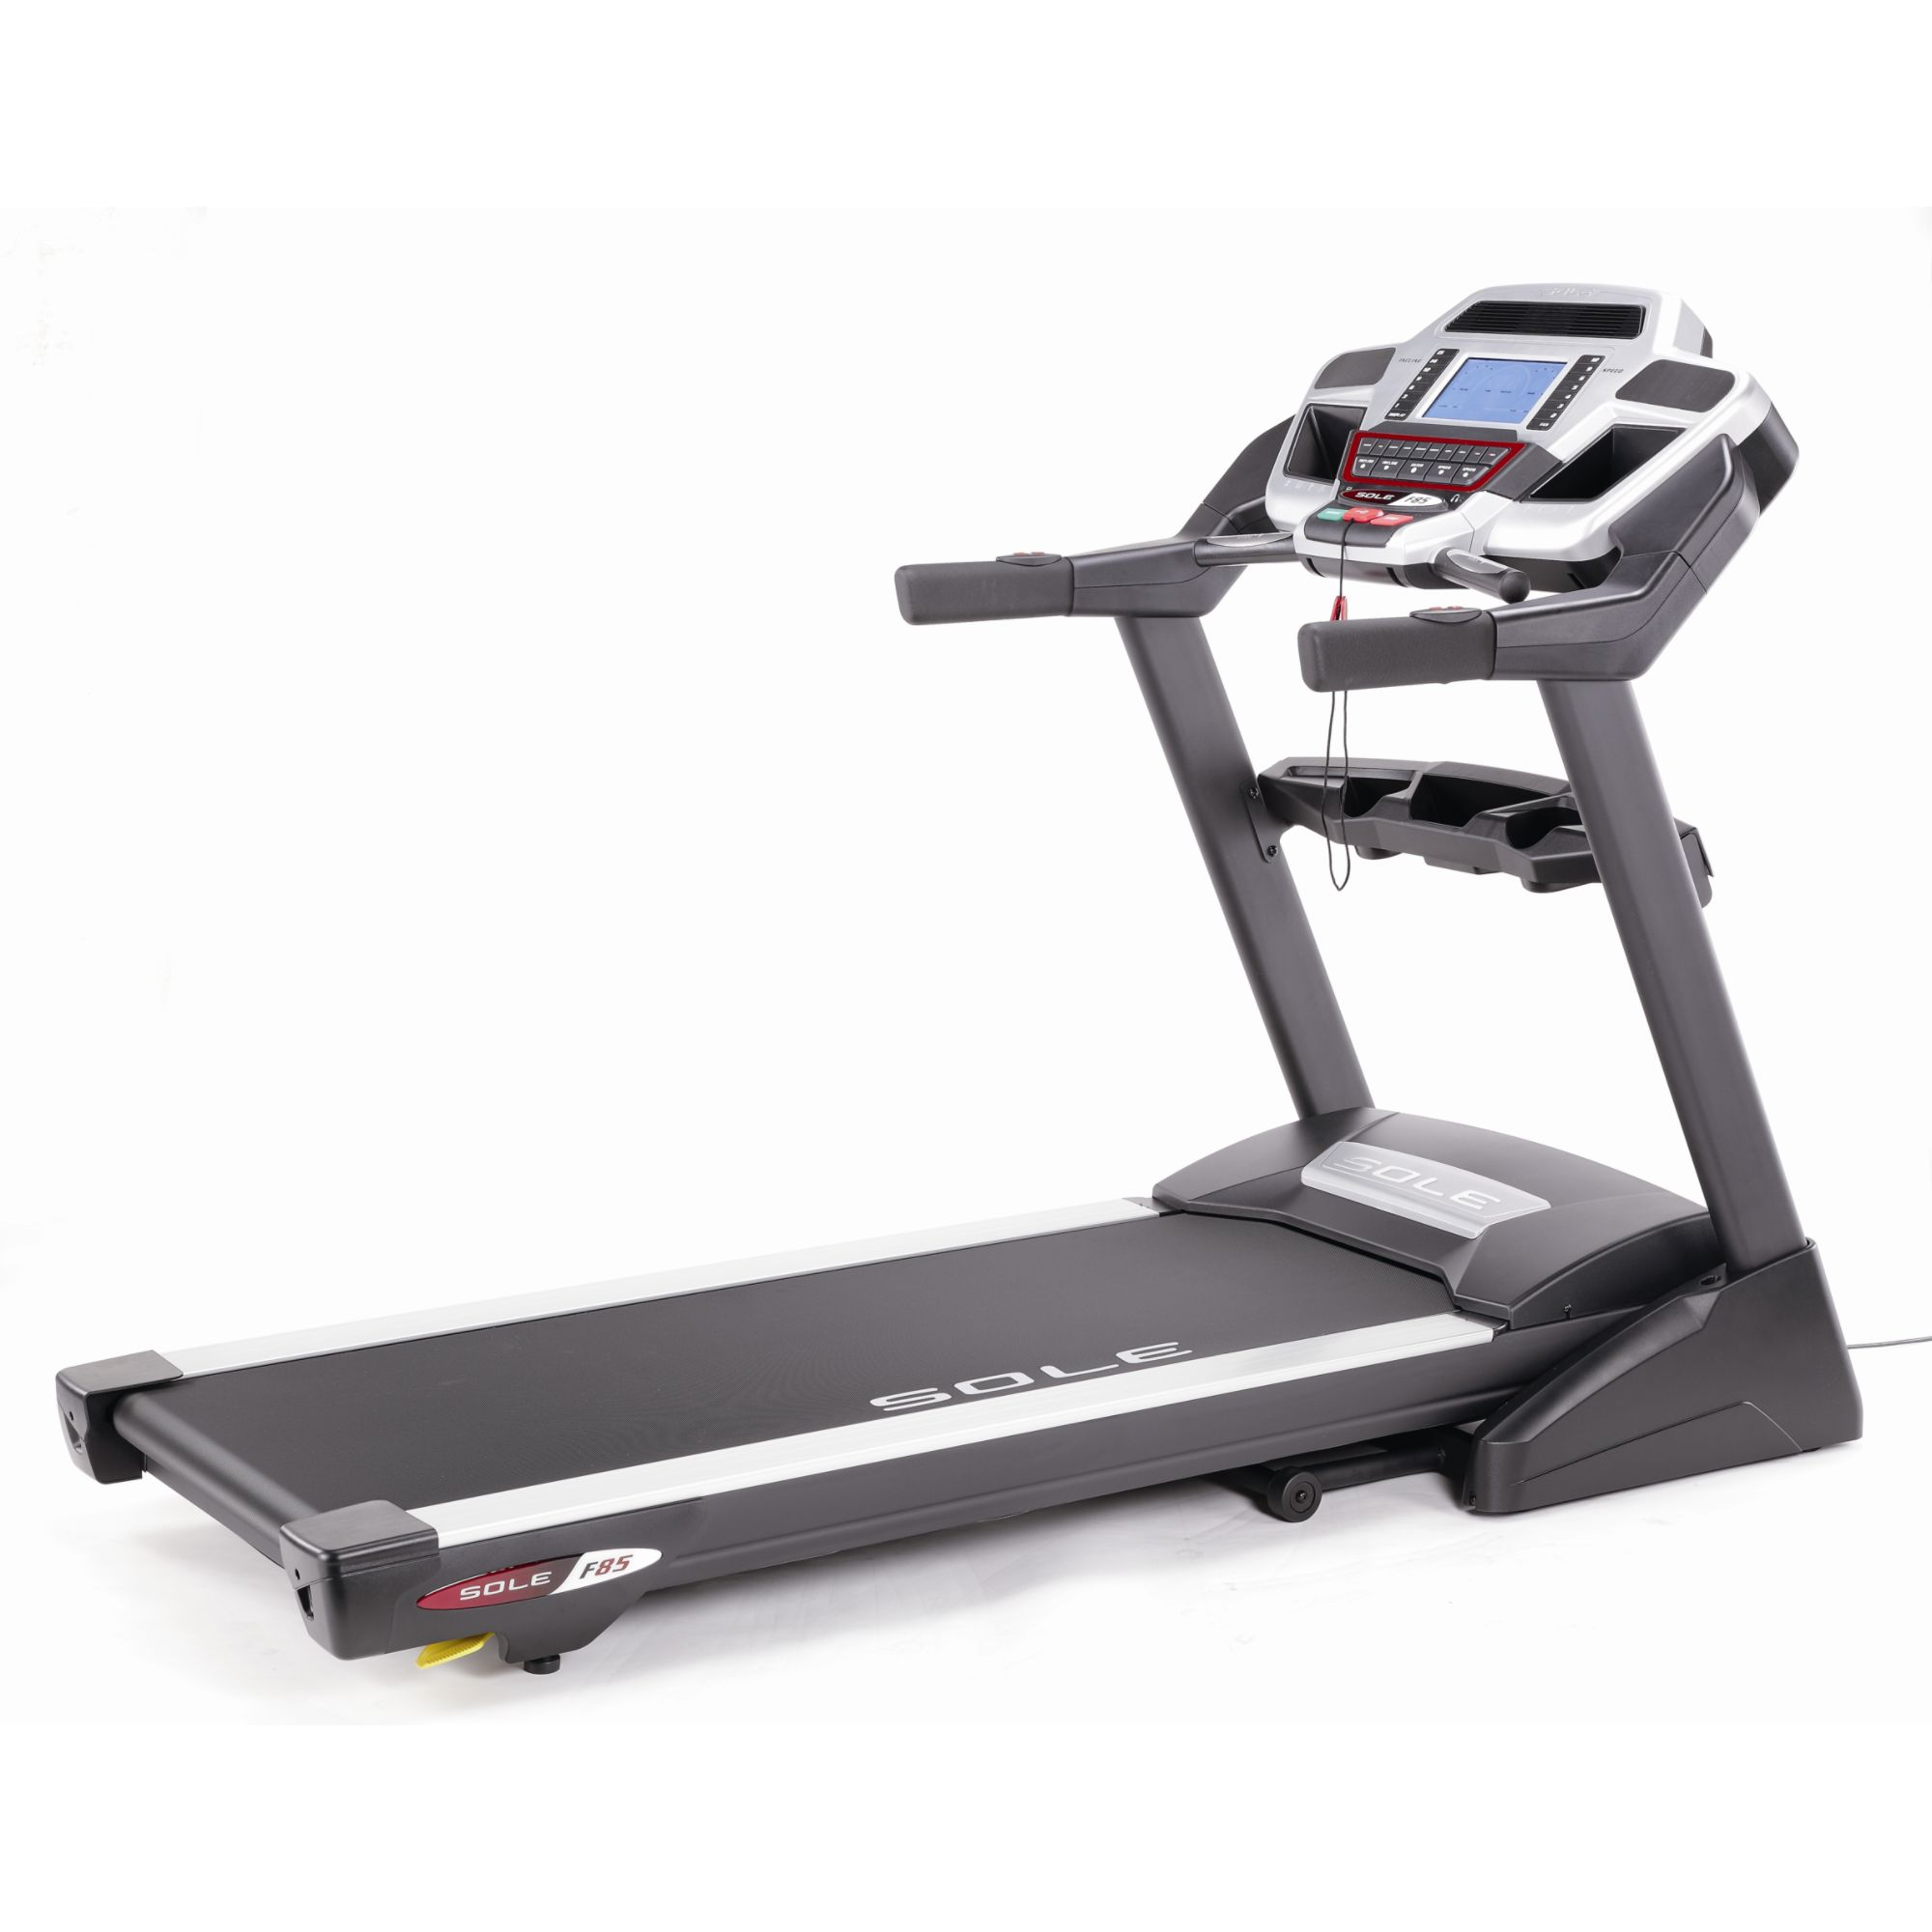 Sole F85 Treadmill- 2013 Model